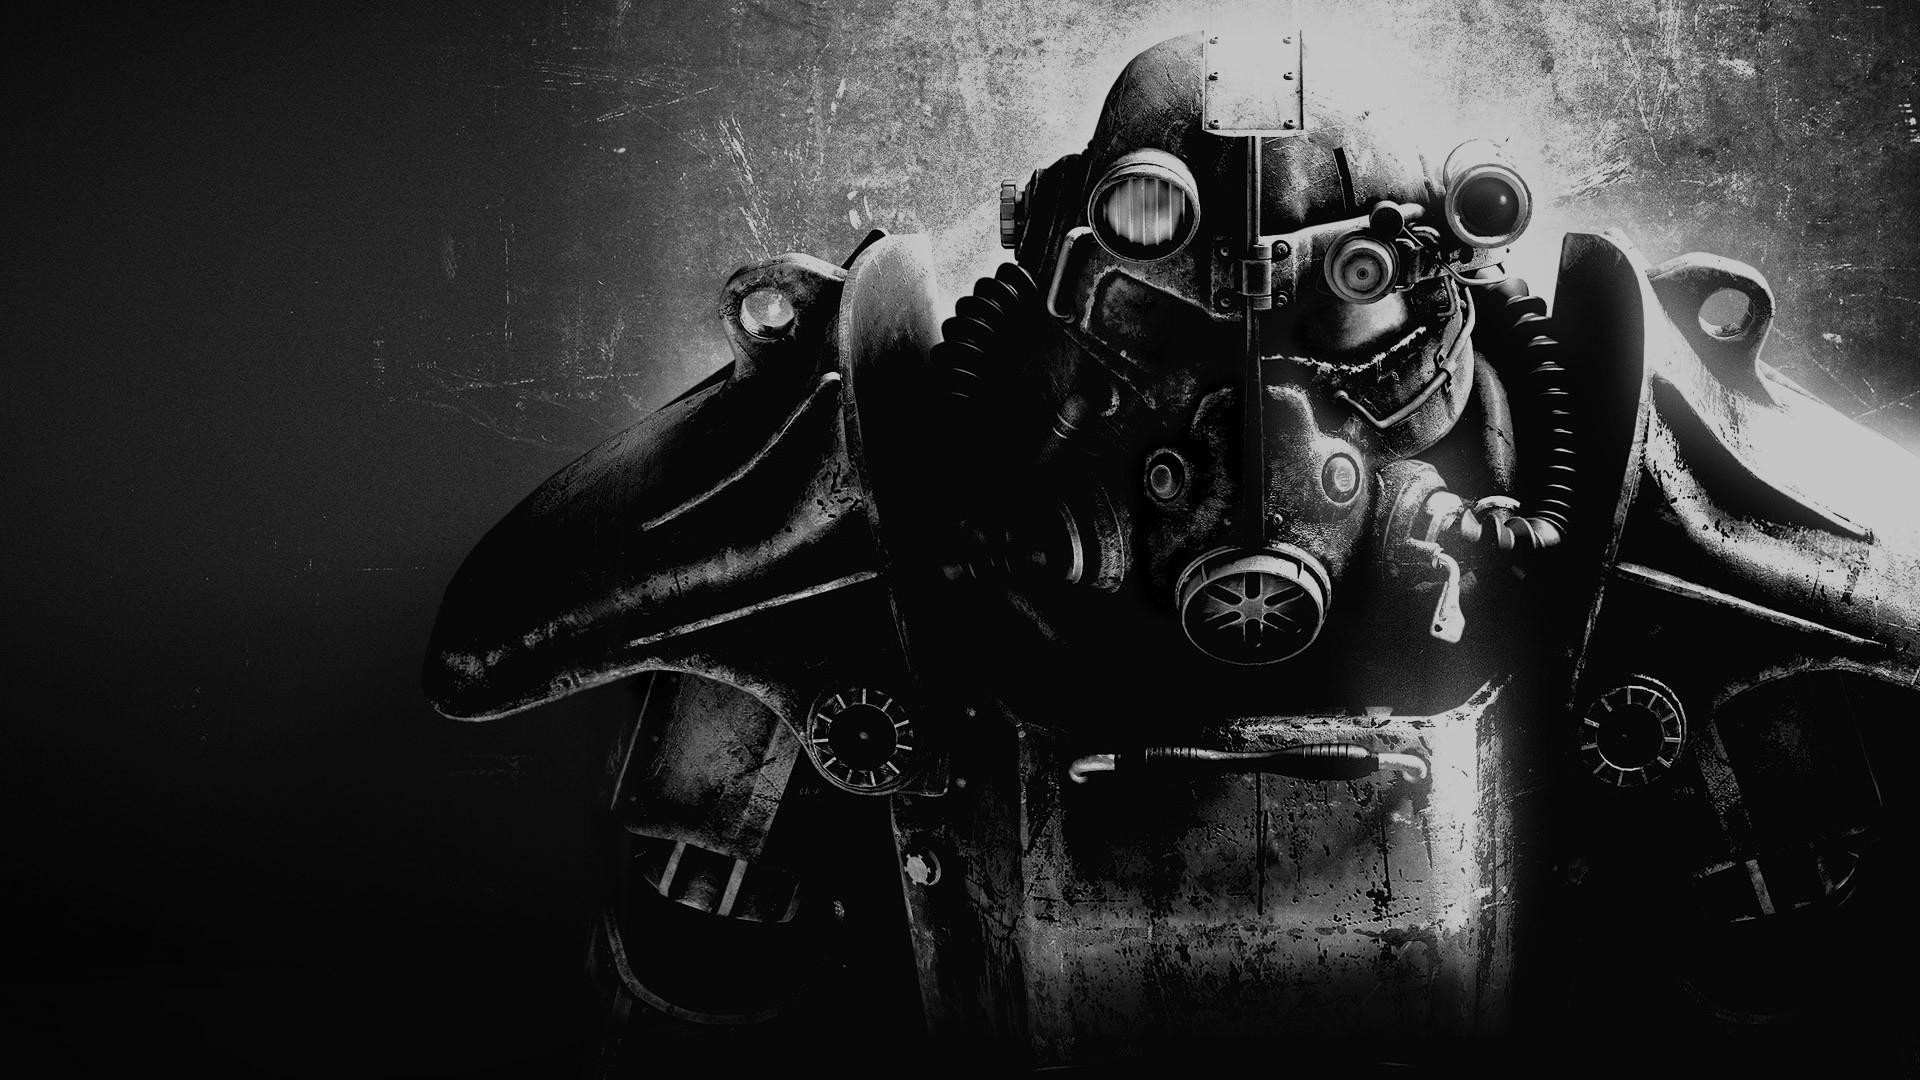 Gaming-Wallpapers-Images-Hd